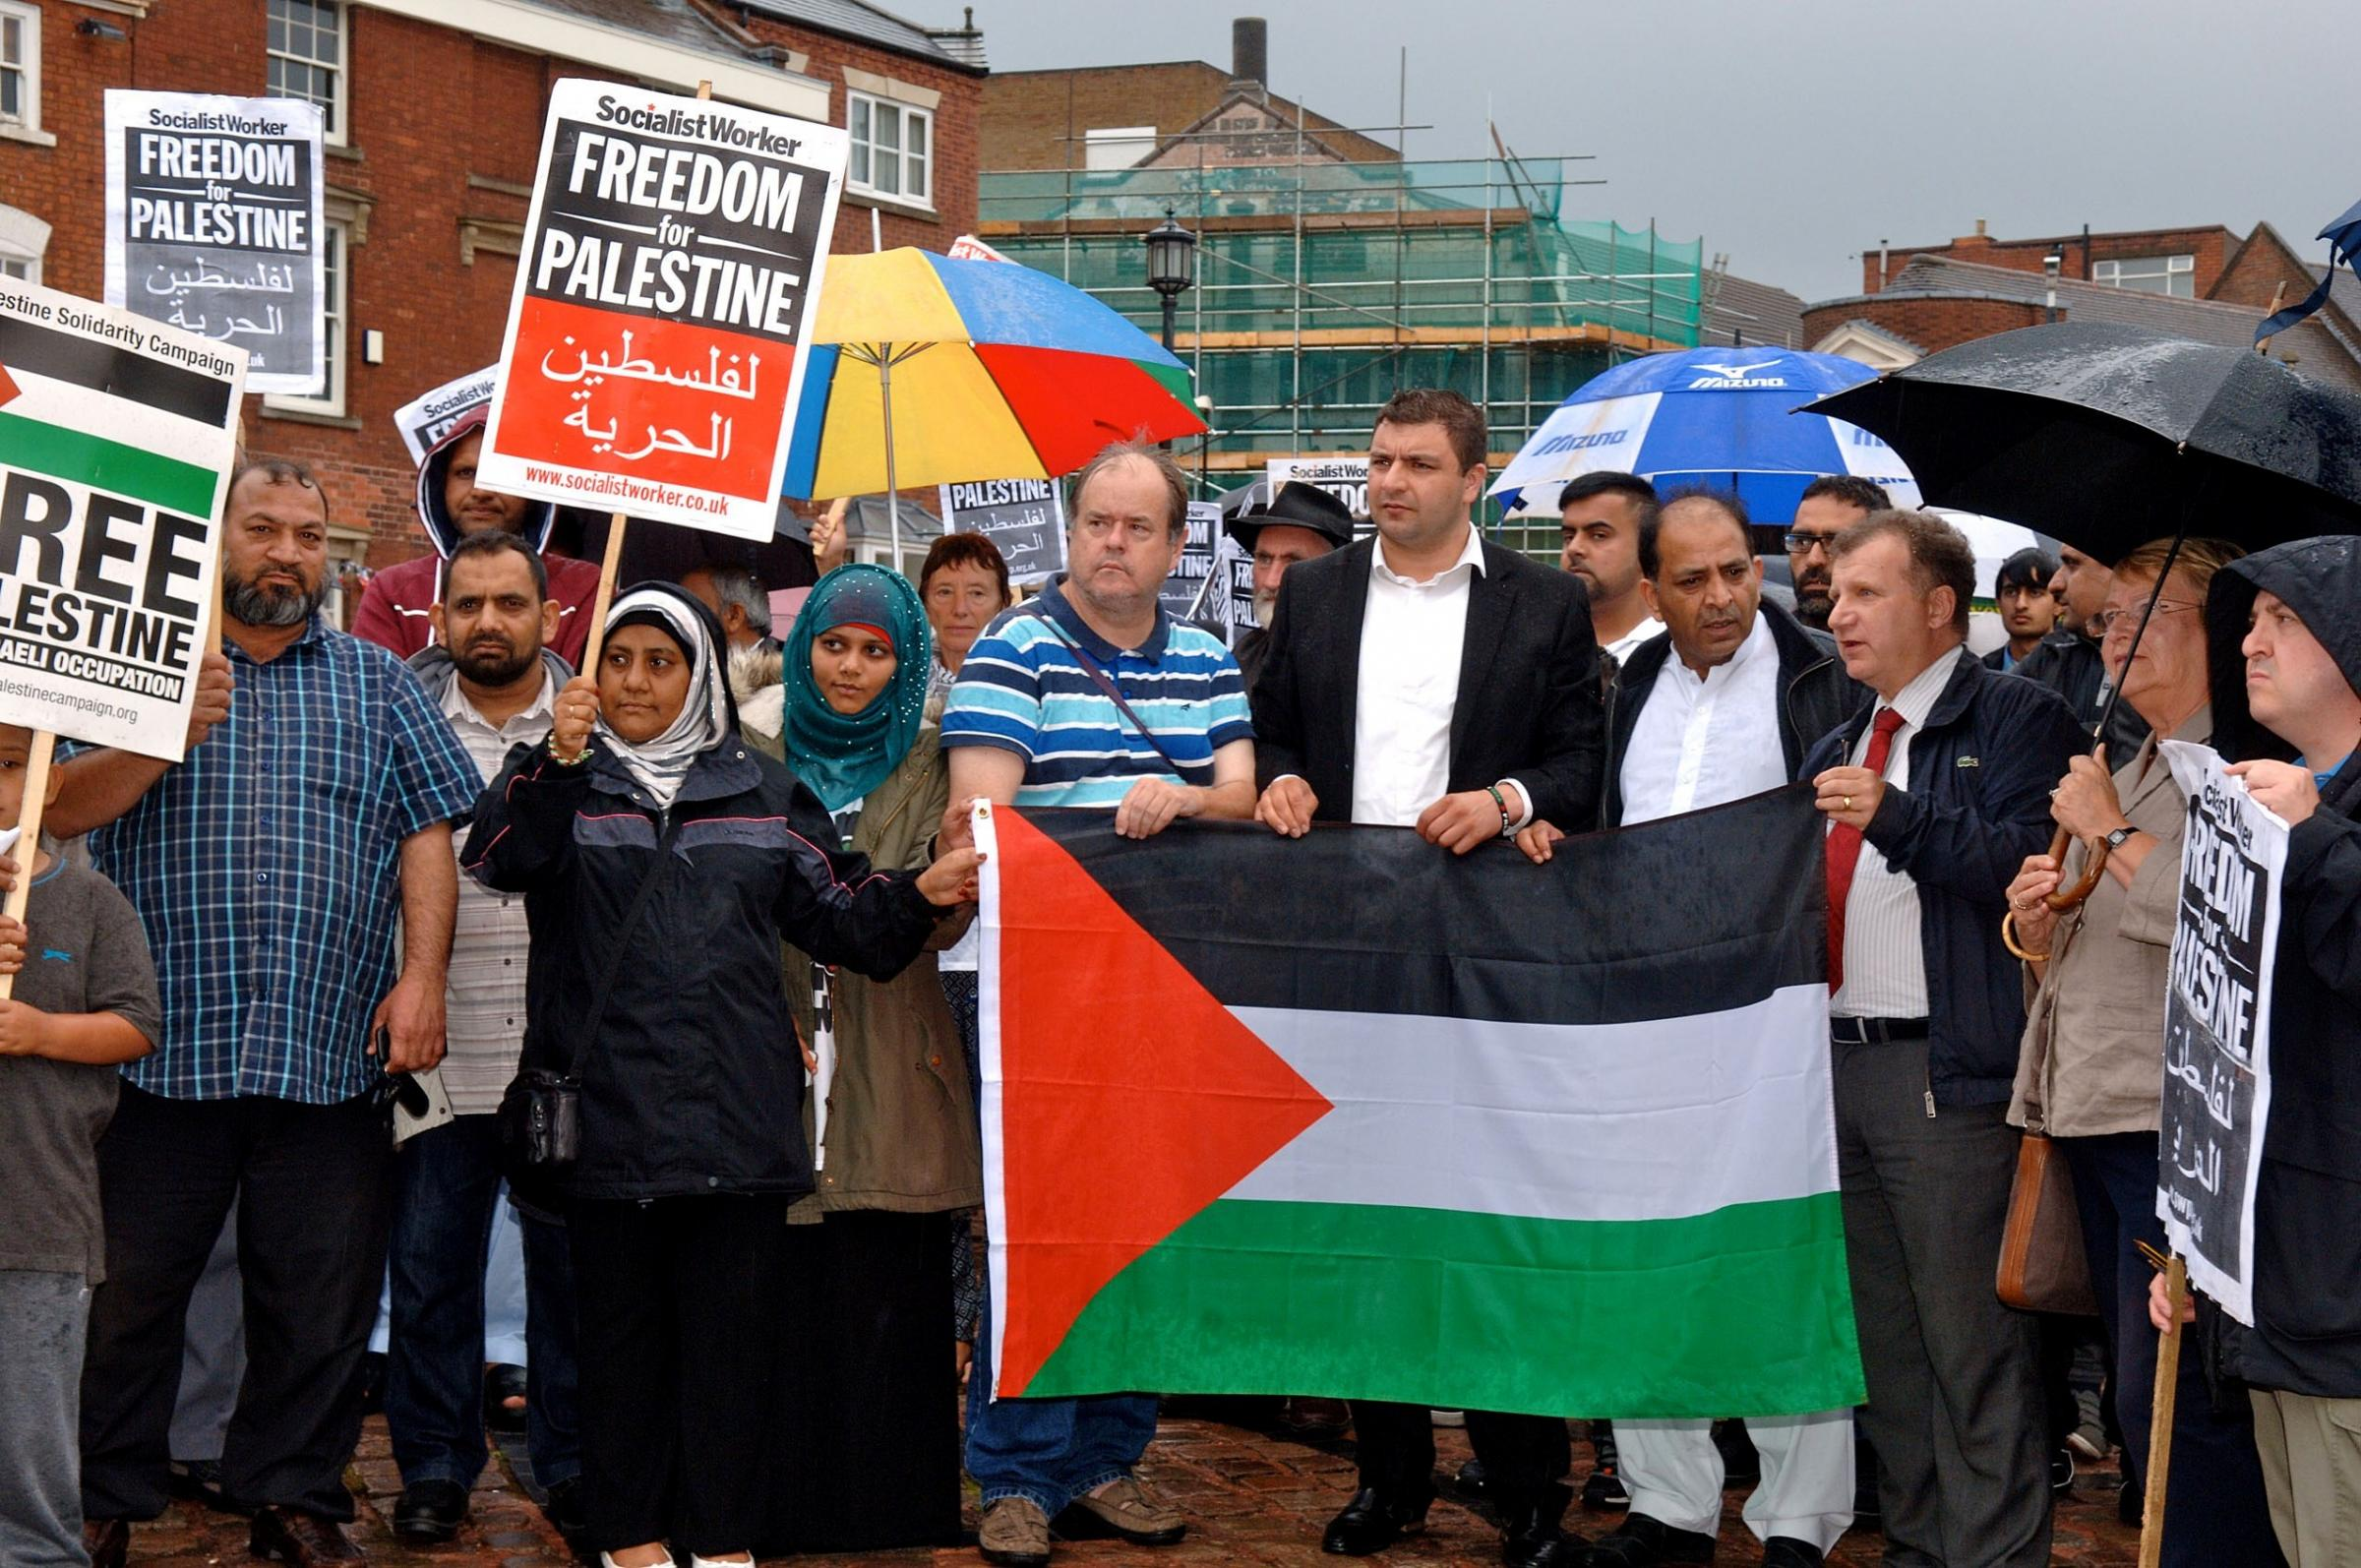 Stourbridge Palestine Solidarity Group's peace and justice vigil in Dudley. 321406LA